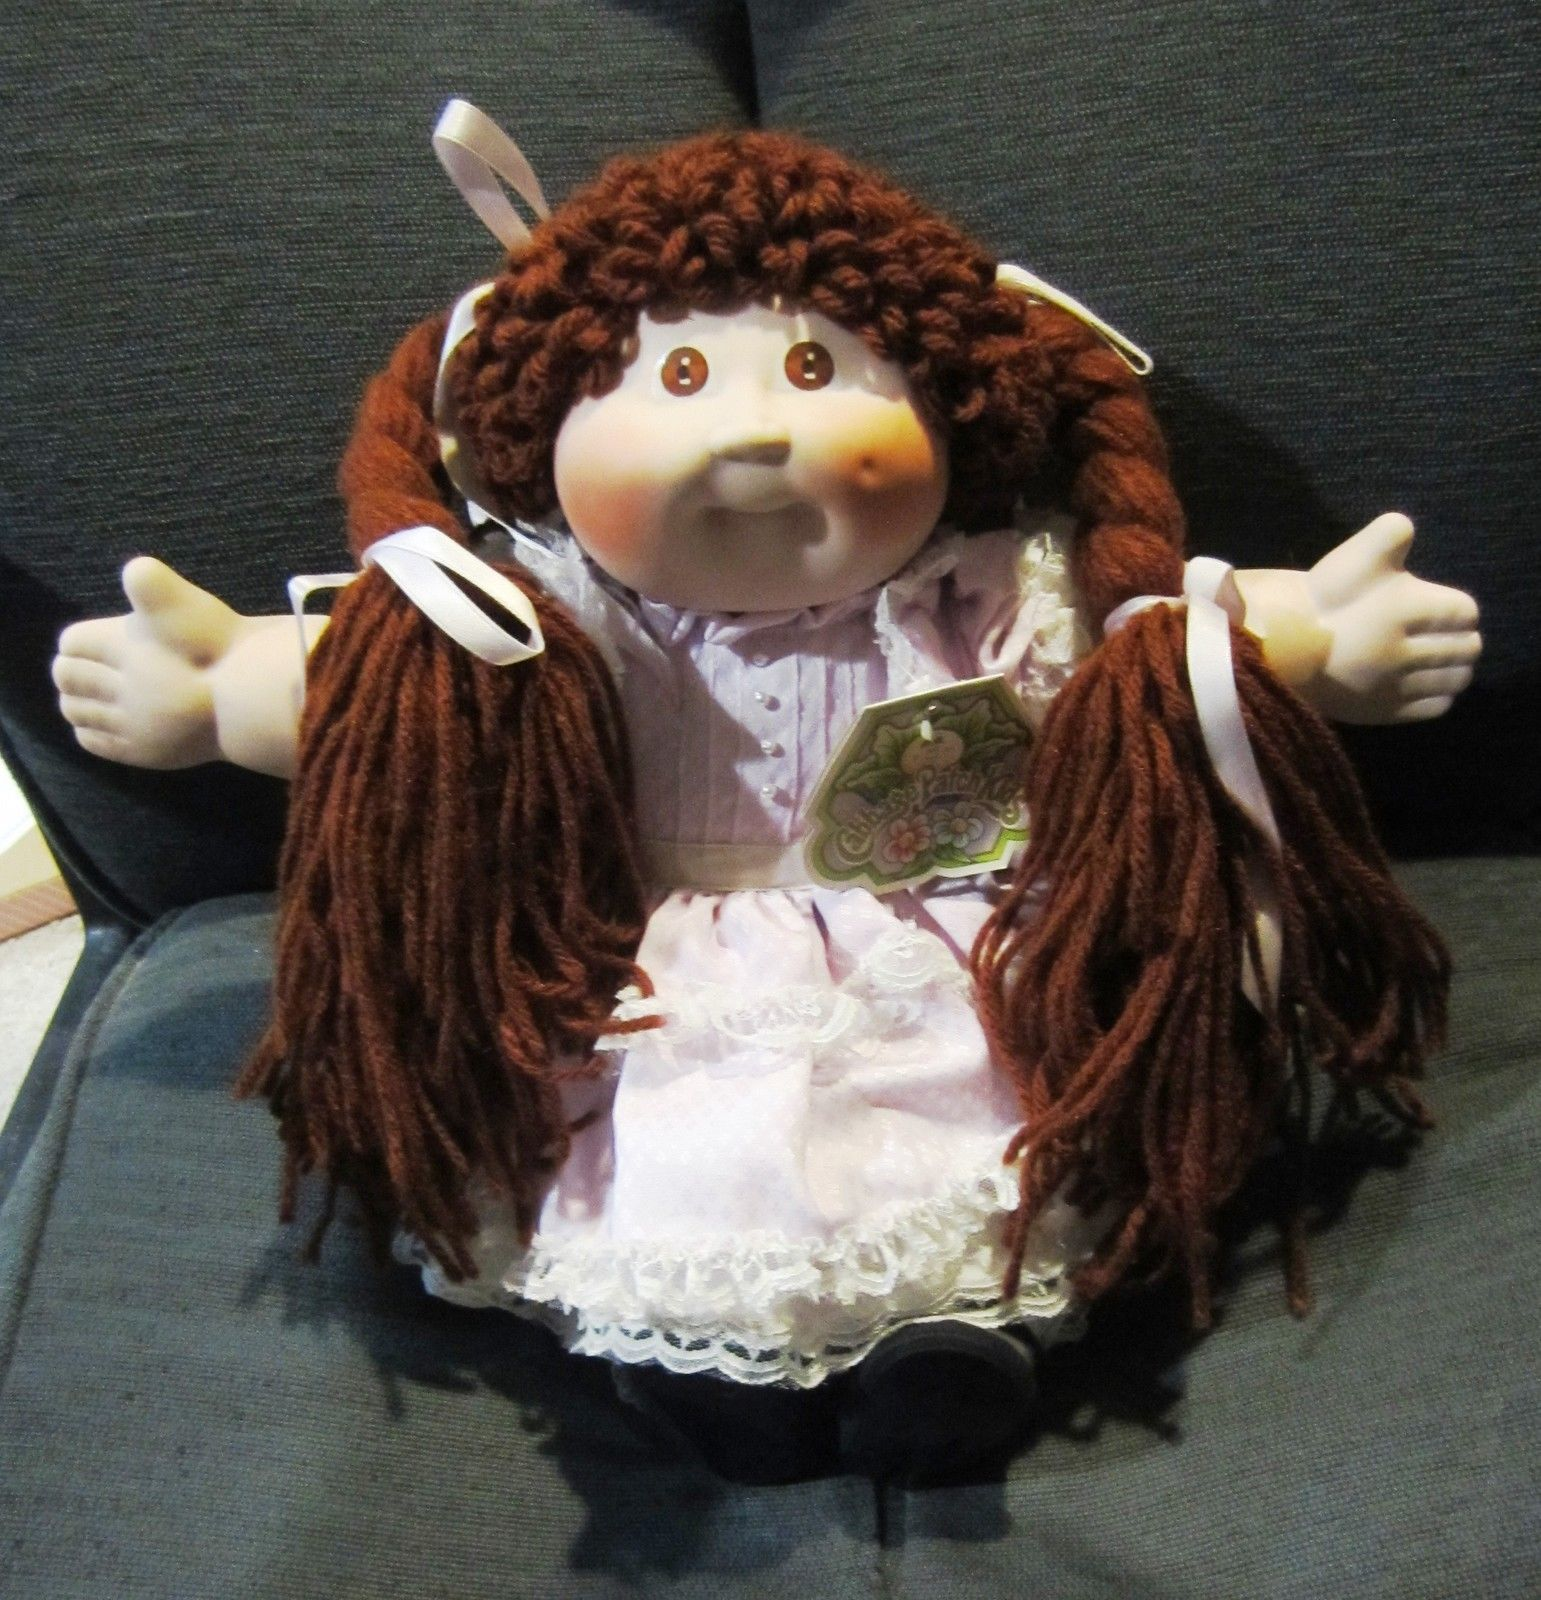 Vintage Limited Edition Porcelain Cabbage Patch Kids doll - COA - Box